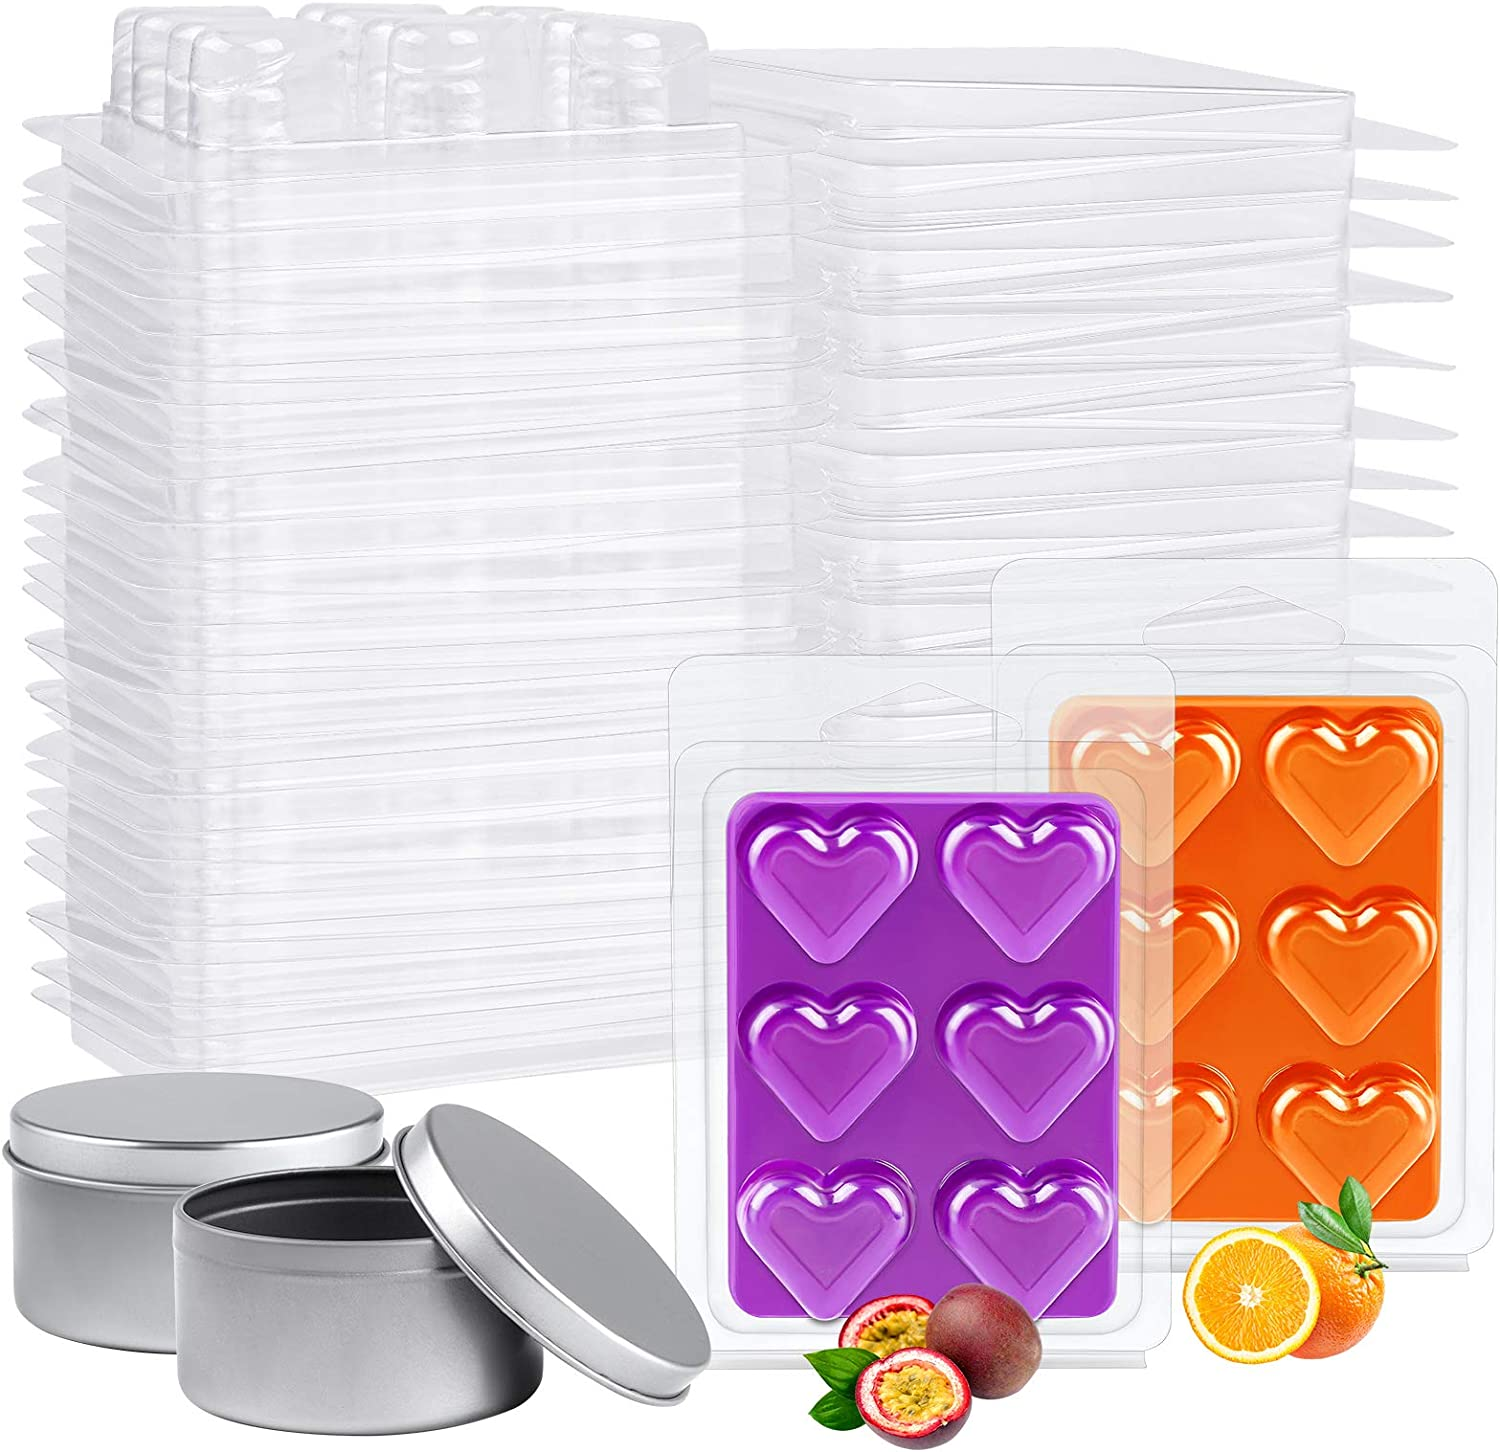 Ruisita 60 Packs Plastic Wax Melt Great interest Mold Candle Sale Special Price with Hear Tins 6 2